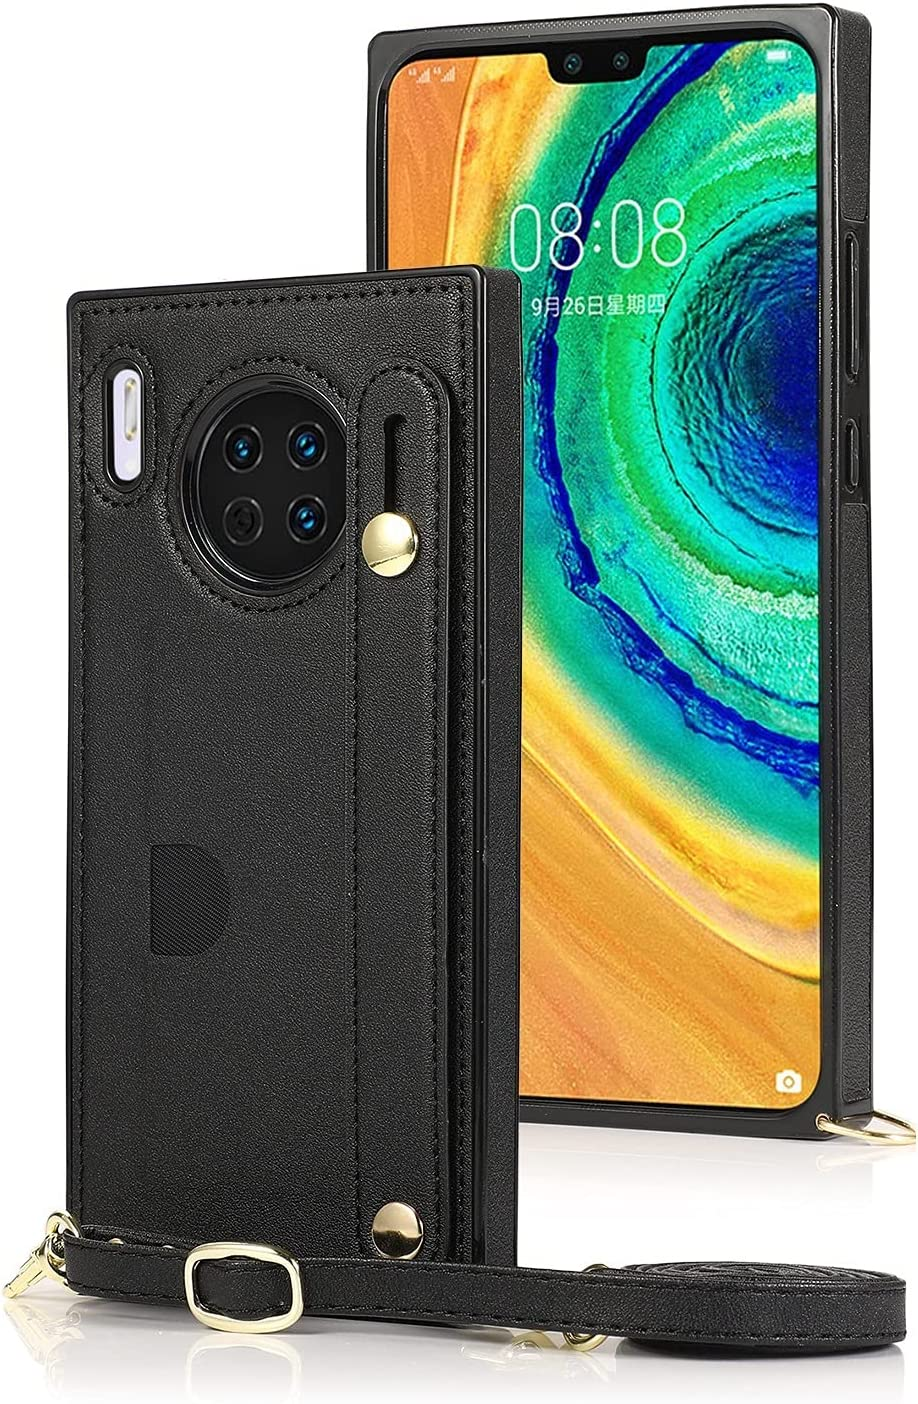 SLDiann Case for Huawei Mate 30, Leather Case with Credit Card Slot Non-Slip Buckle Holder/Crossbody Long Lanyard, Shockproof Leather TPU Case Cover for Huawei Mate 30 (Color : Black)